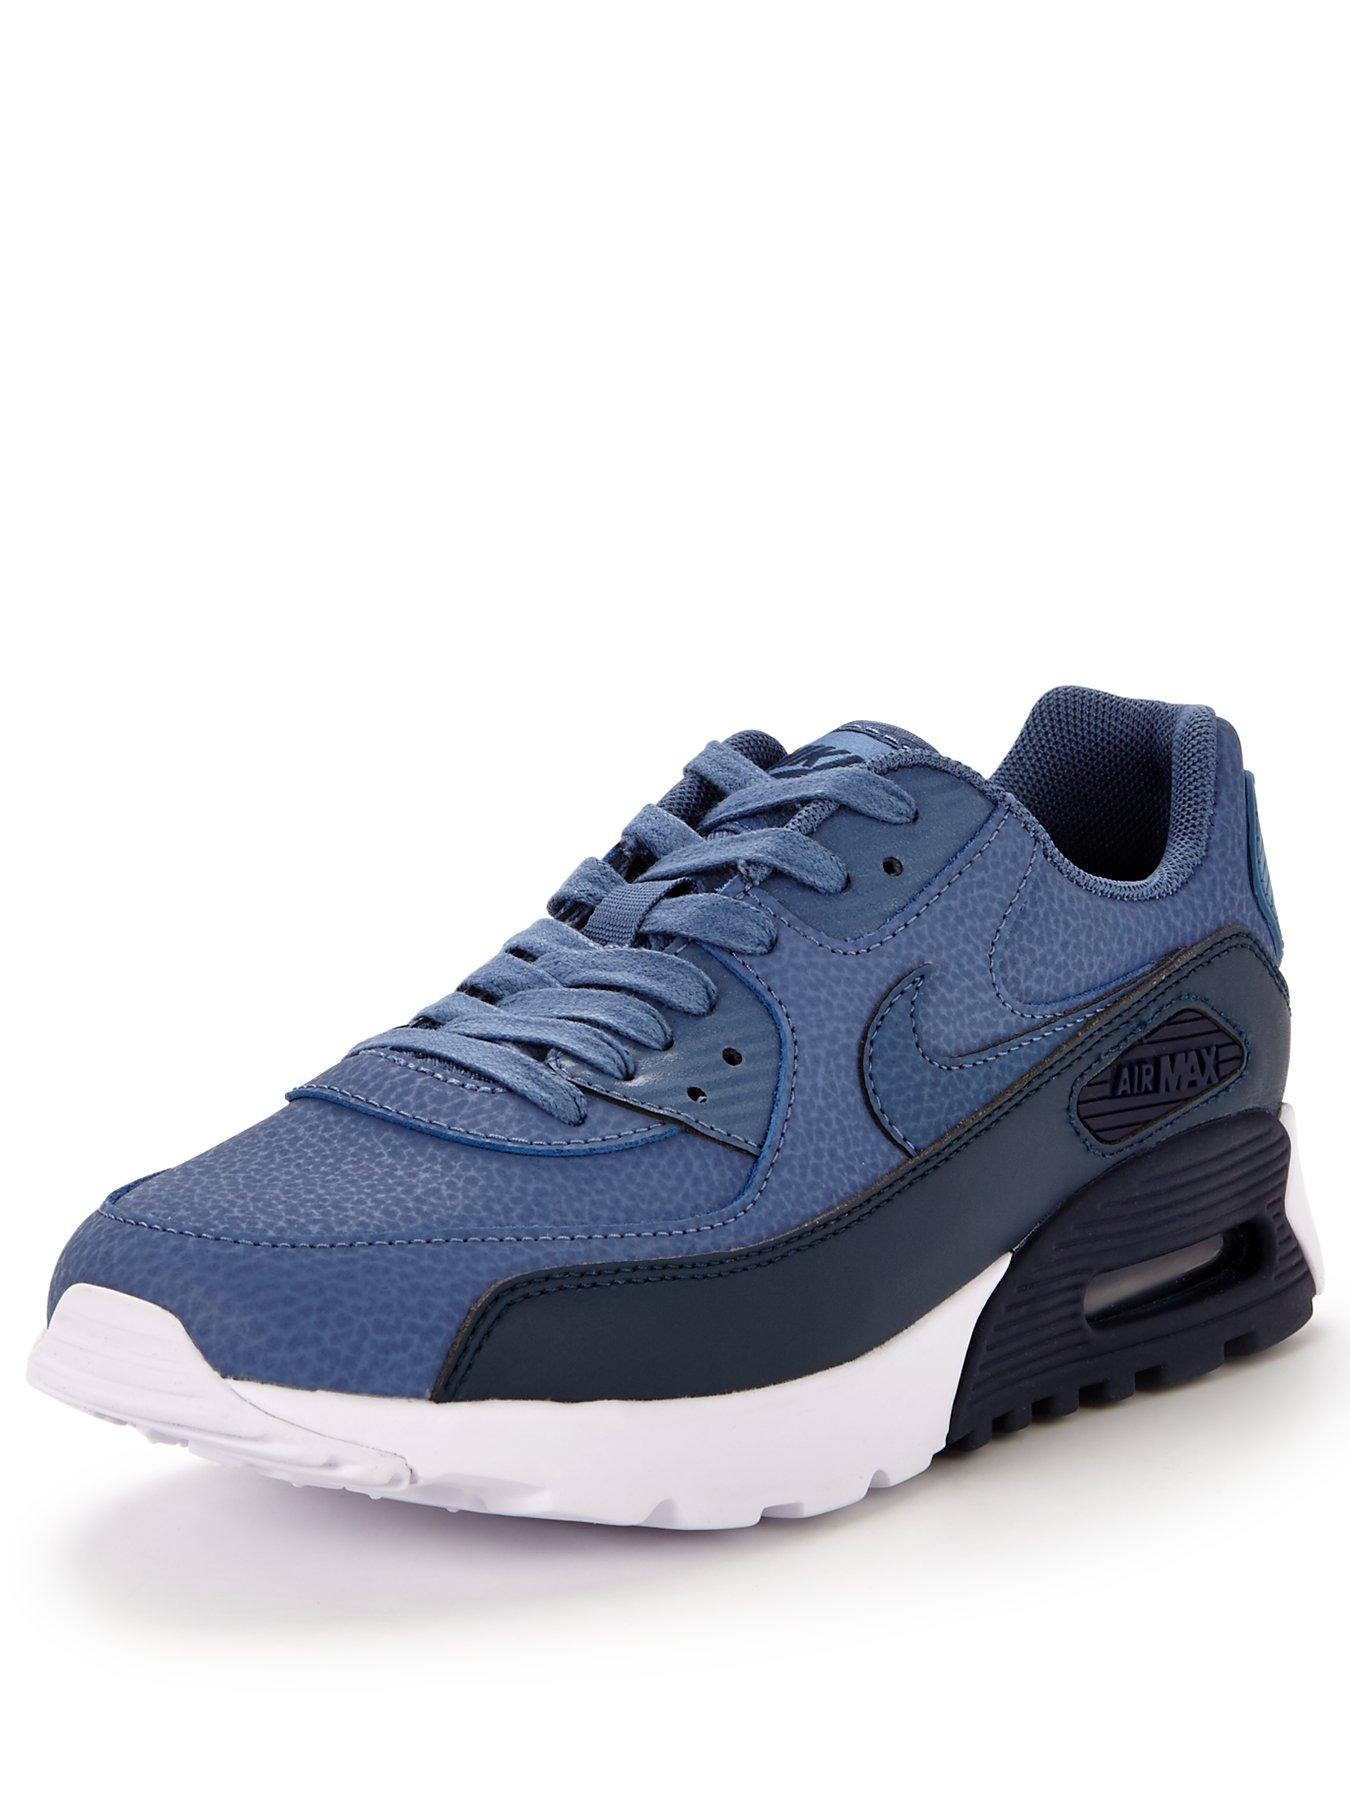 zioof Nike Air Max 90 | Trainers | Child & baby | www